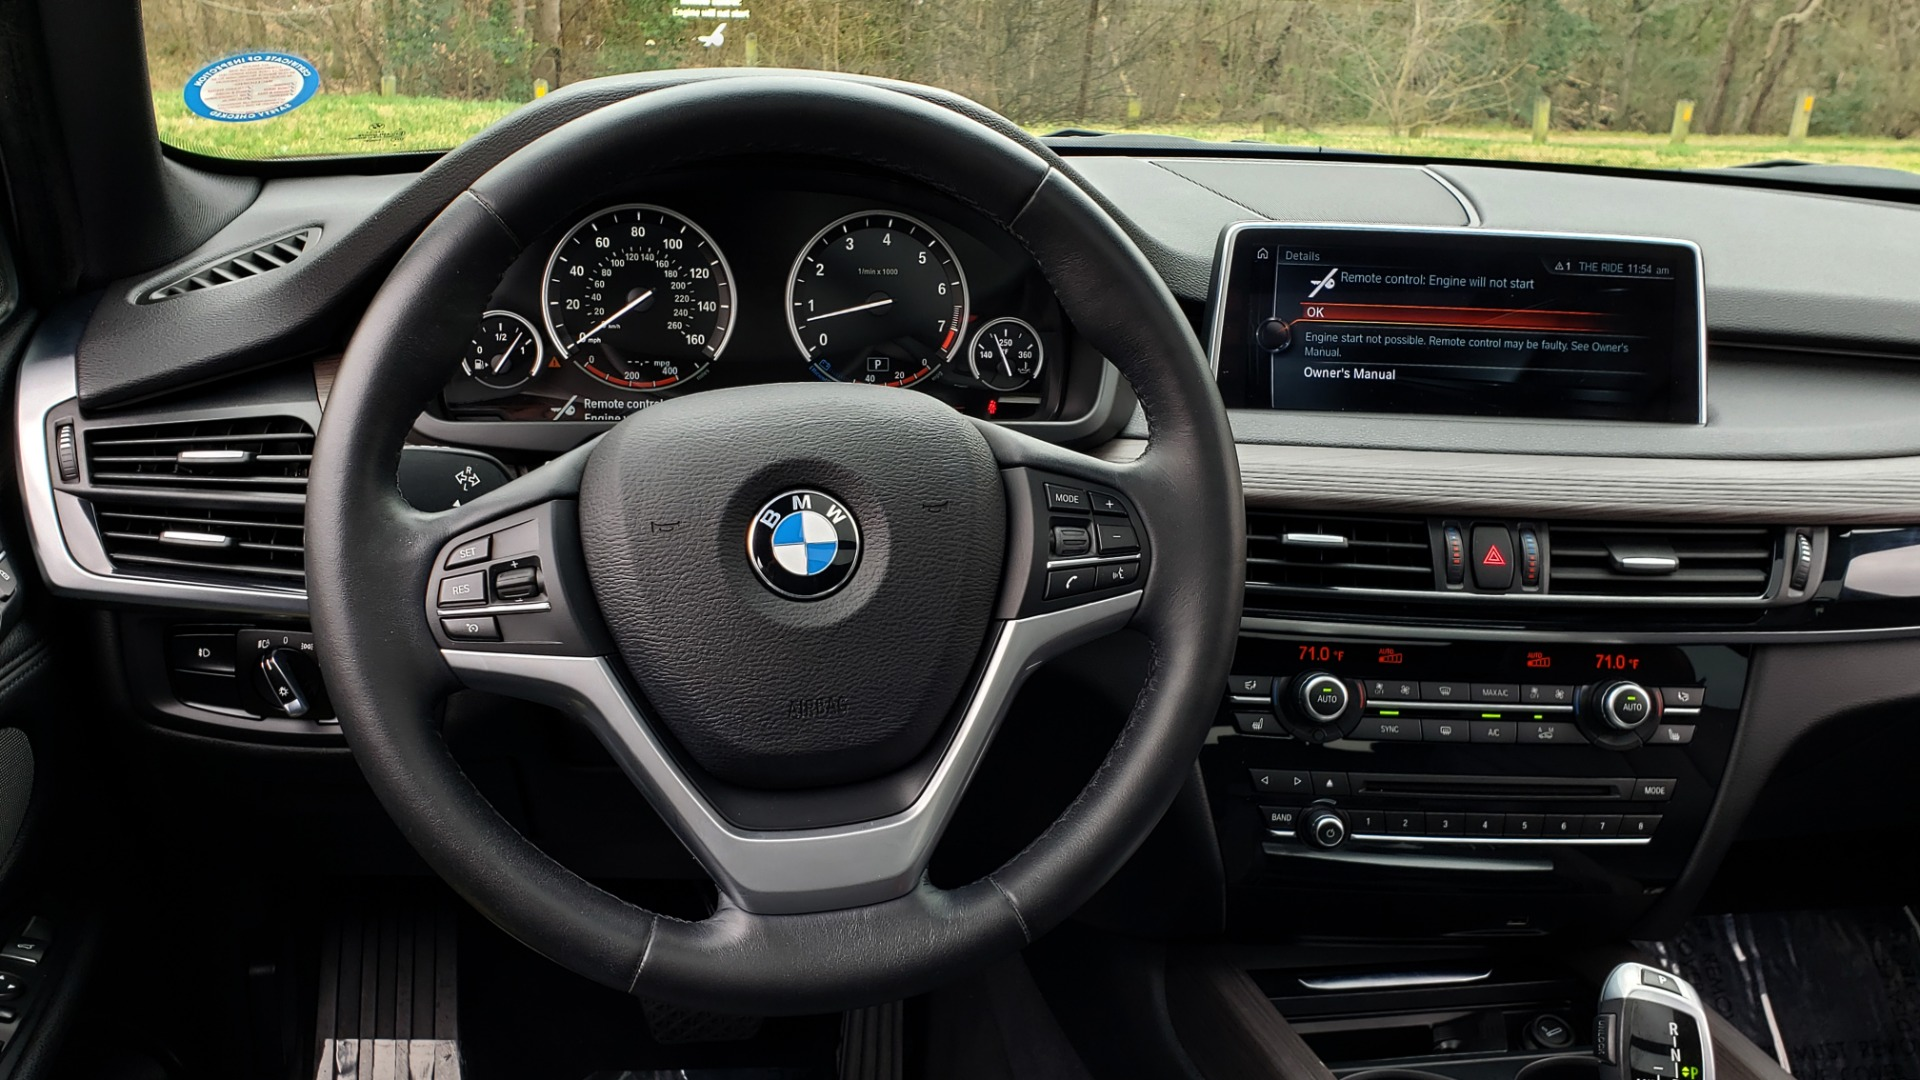 Used 2017 BMW X5 XDRIVE35I / PREM LUX PKG / DRVR ASST / CLD WTHR / APPLE CAR PLAY for sale Sold at Formula Imports in Charlotte NC 28227 39